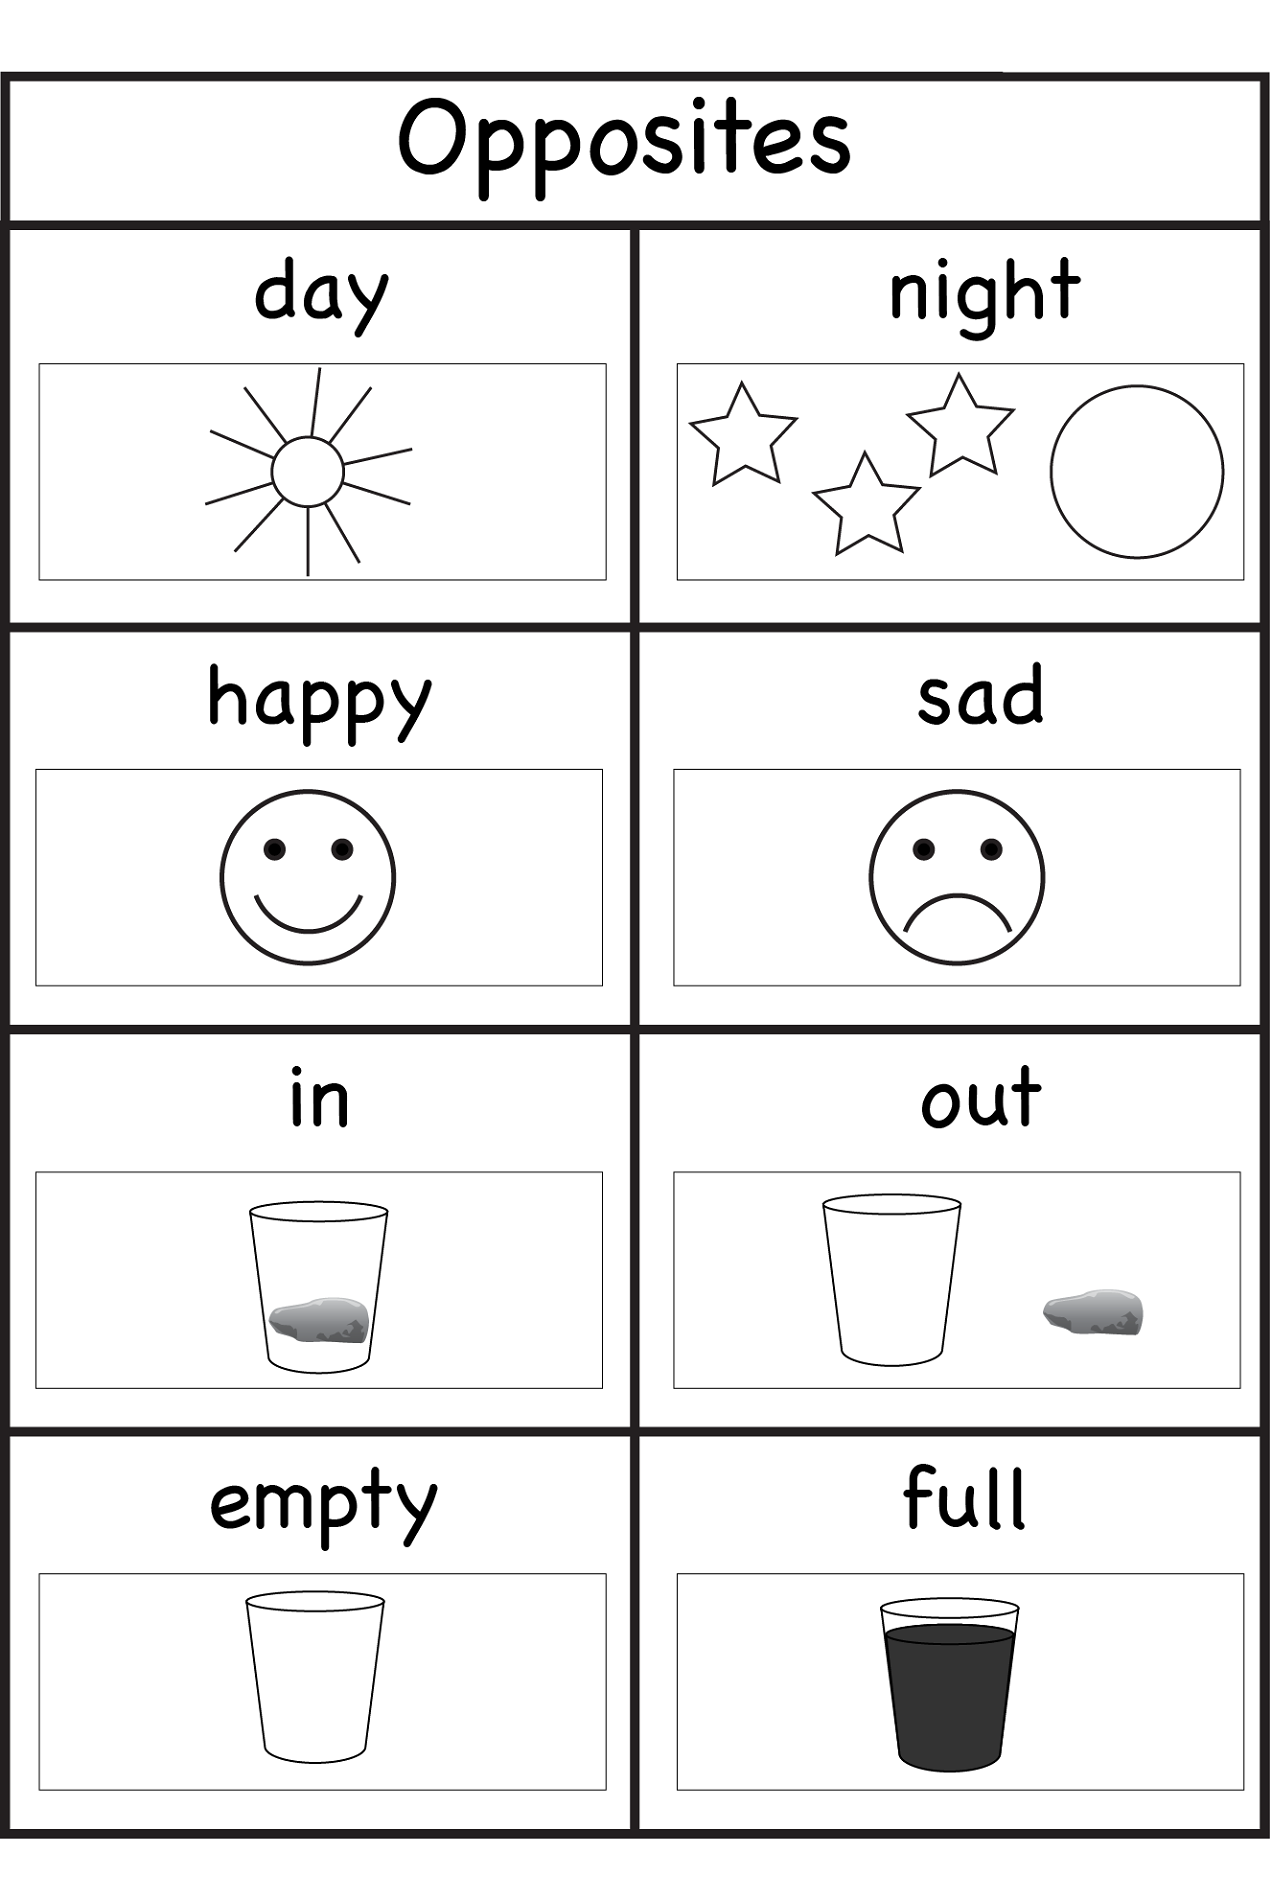 Worksheets for 5 Years Old Kids – Worksheet for Kids